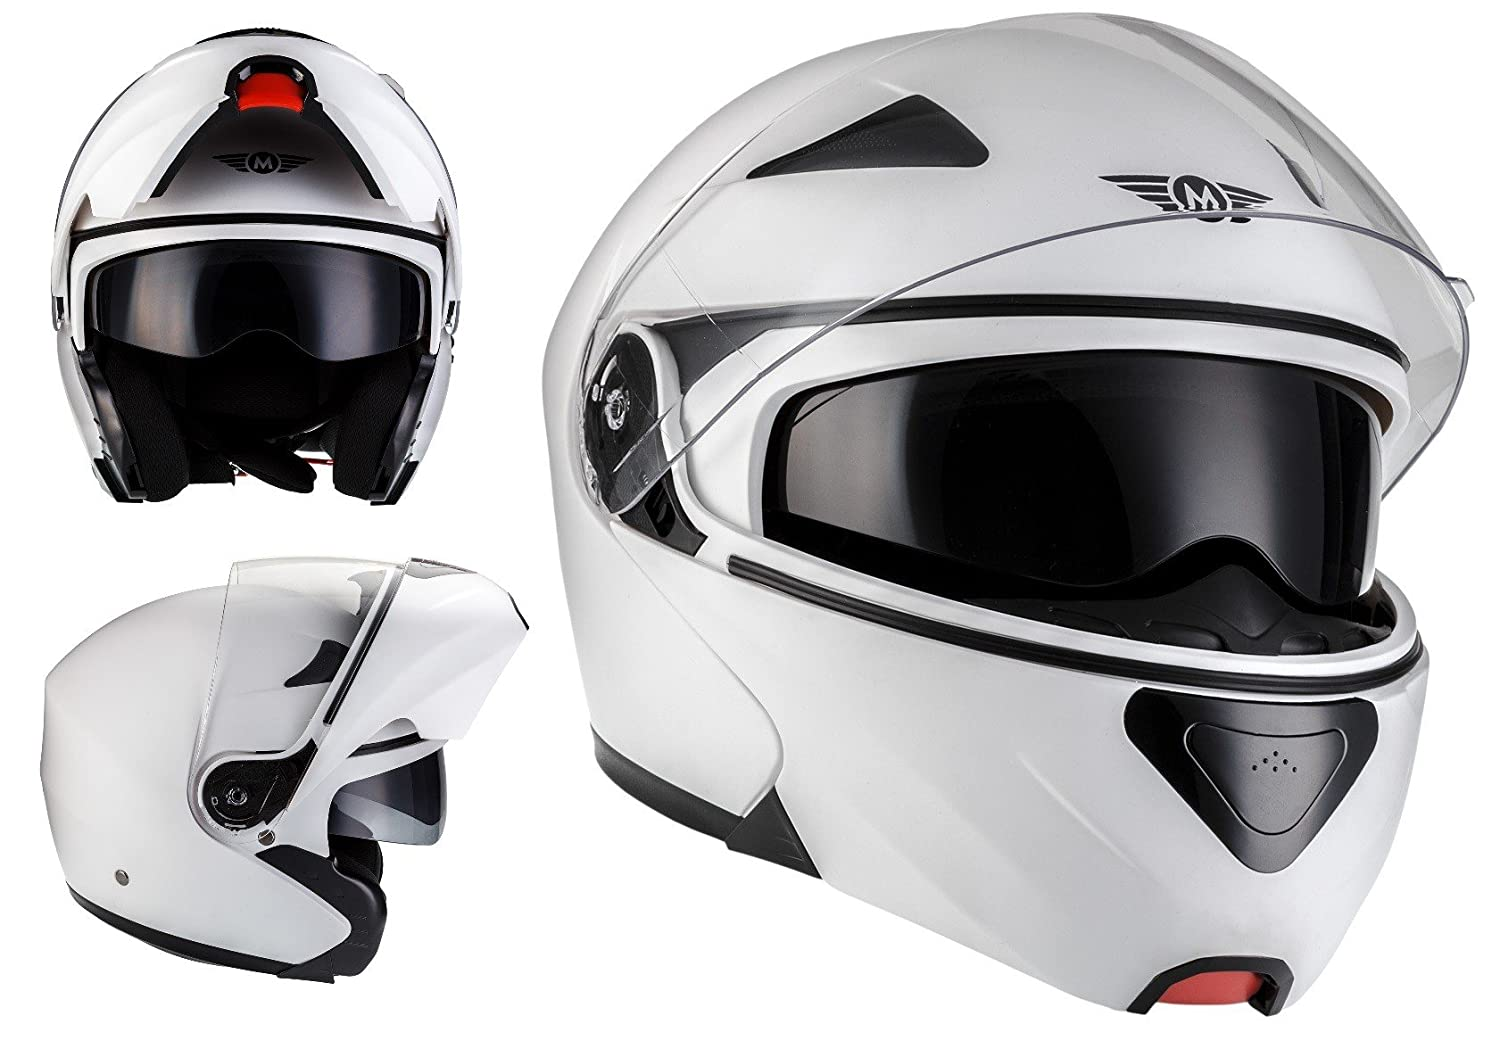 61 two Visors /· incl MOTO F19 Gloss Black /· Cruiser Motorcycle-Helmet Full-Face Helmet Modular-Helmet Scooter-Helmet Street Moto-Helmet Scooter-Helmet Flip-Up Helmet /· ECE certified /· incl Cloth Bag /· Black /· XL